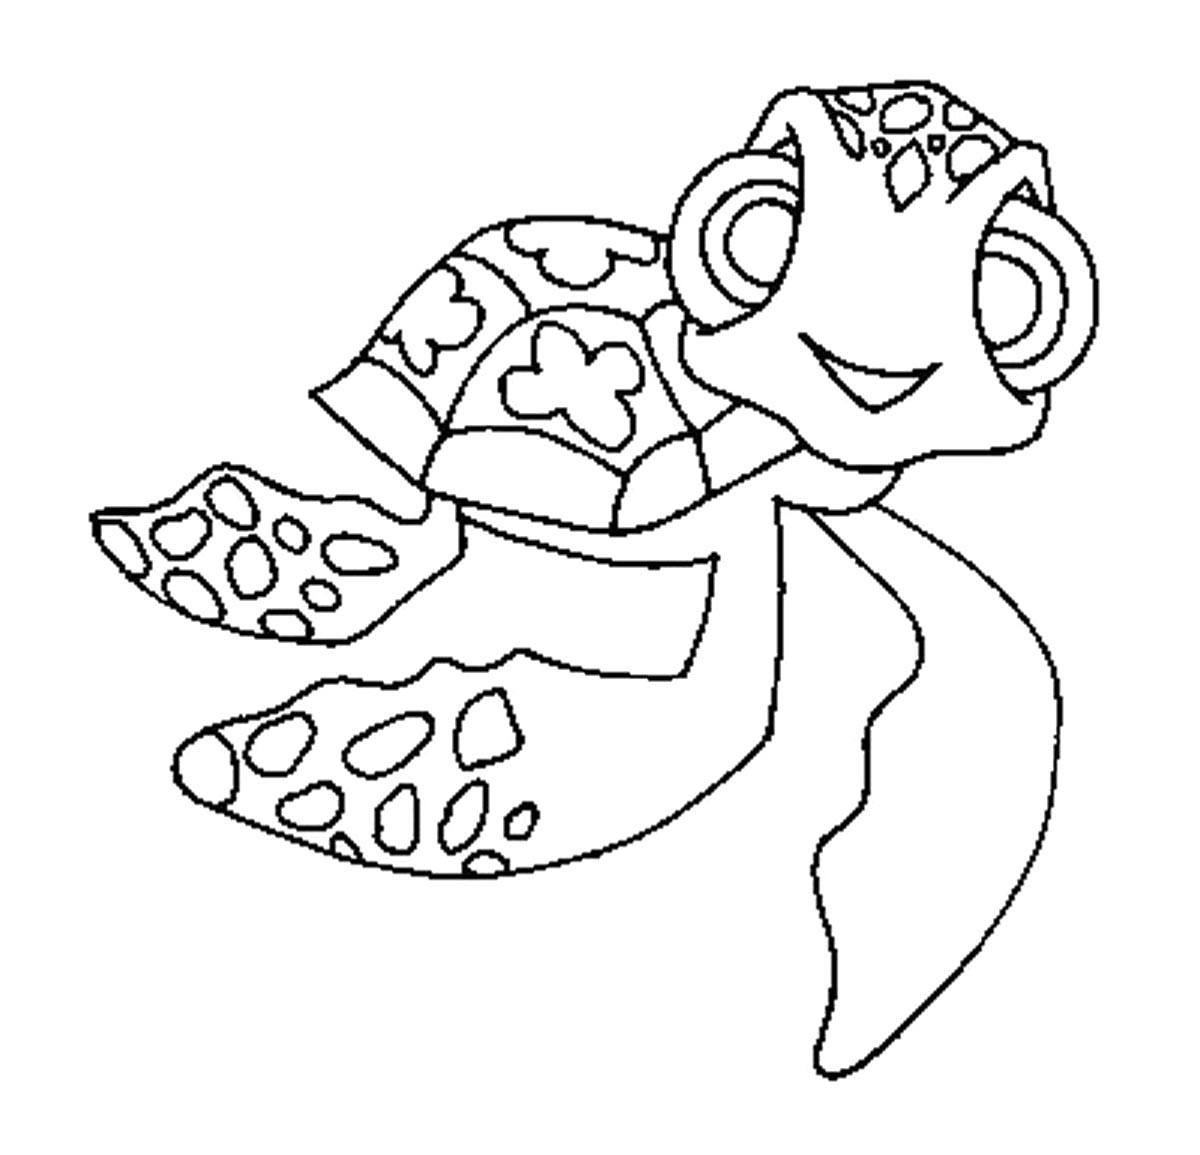 Sea Turtle Cartoon Drawing at GetDrawings.com   Free for personal ...